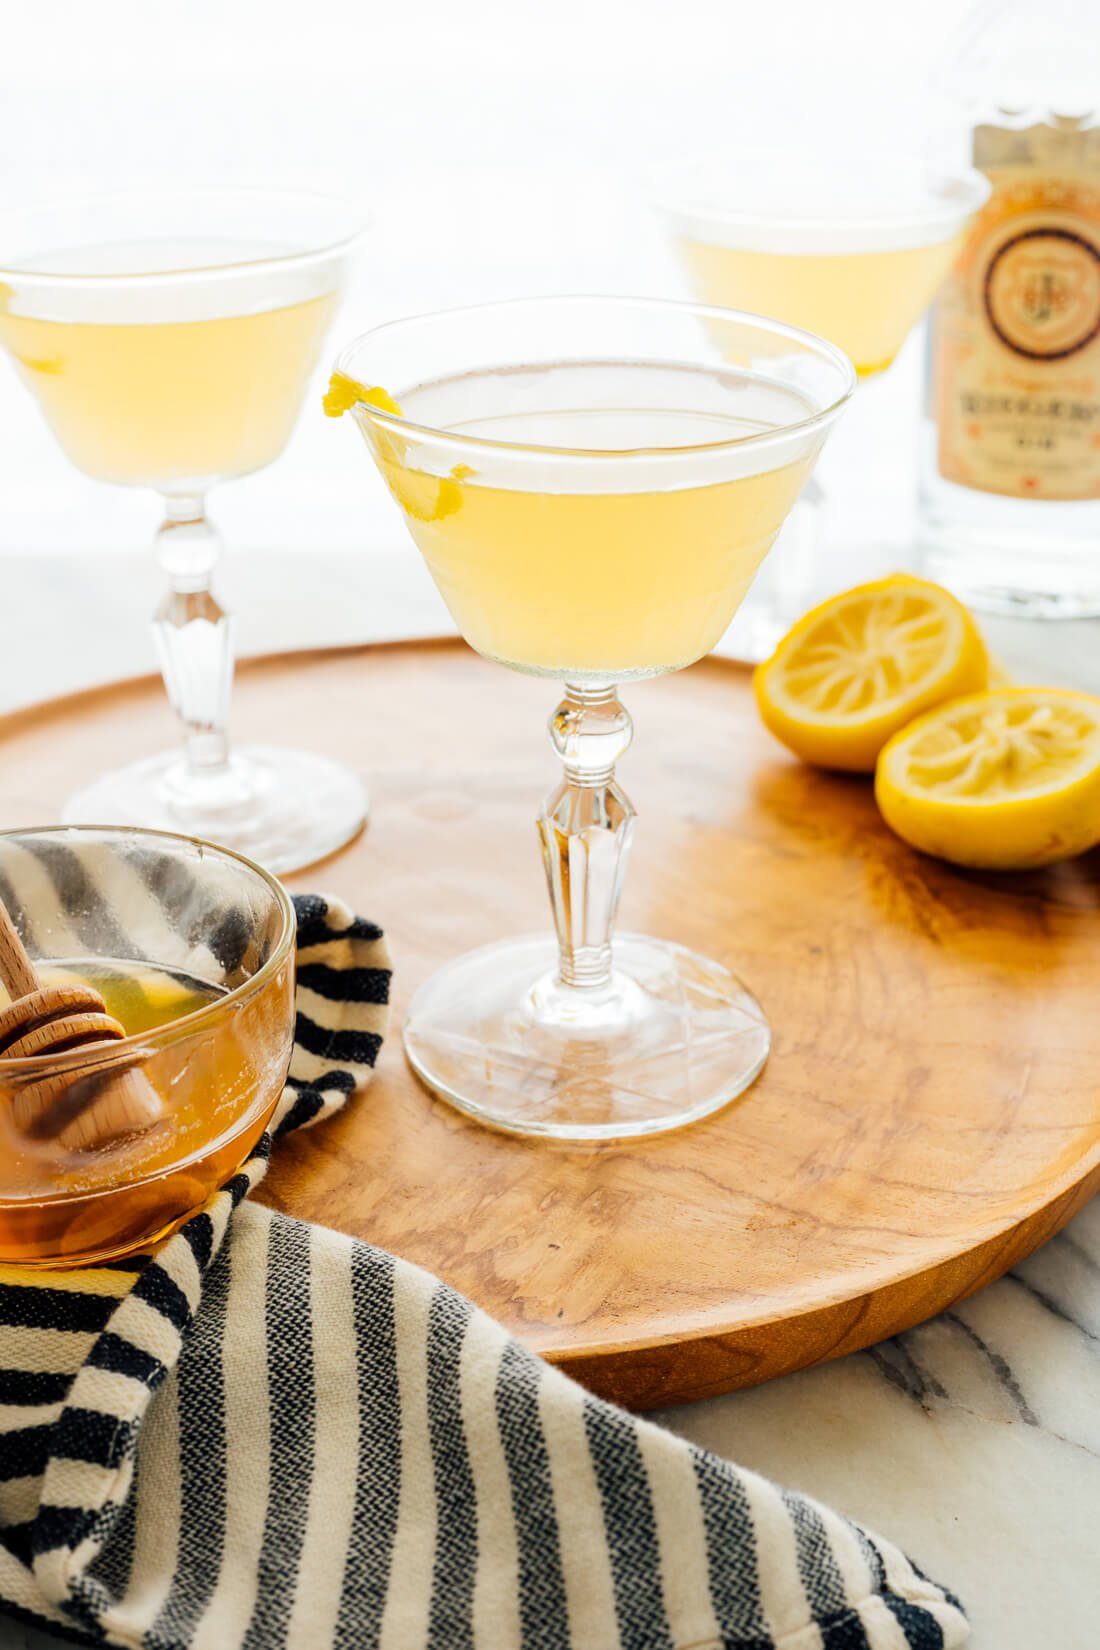 The bee's knees is a classic gin cocktail with lemon and honey